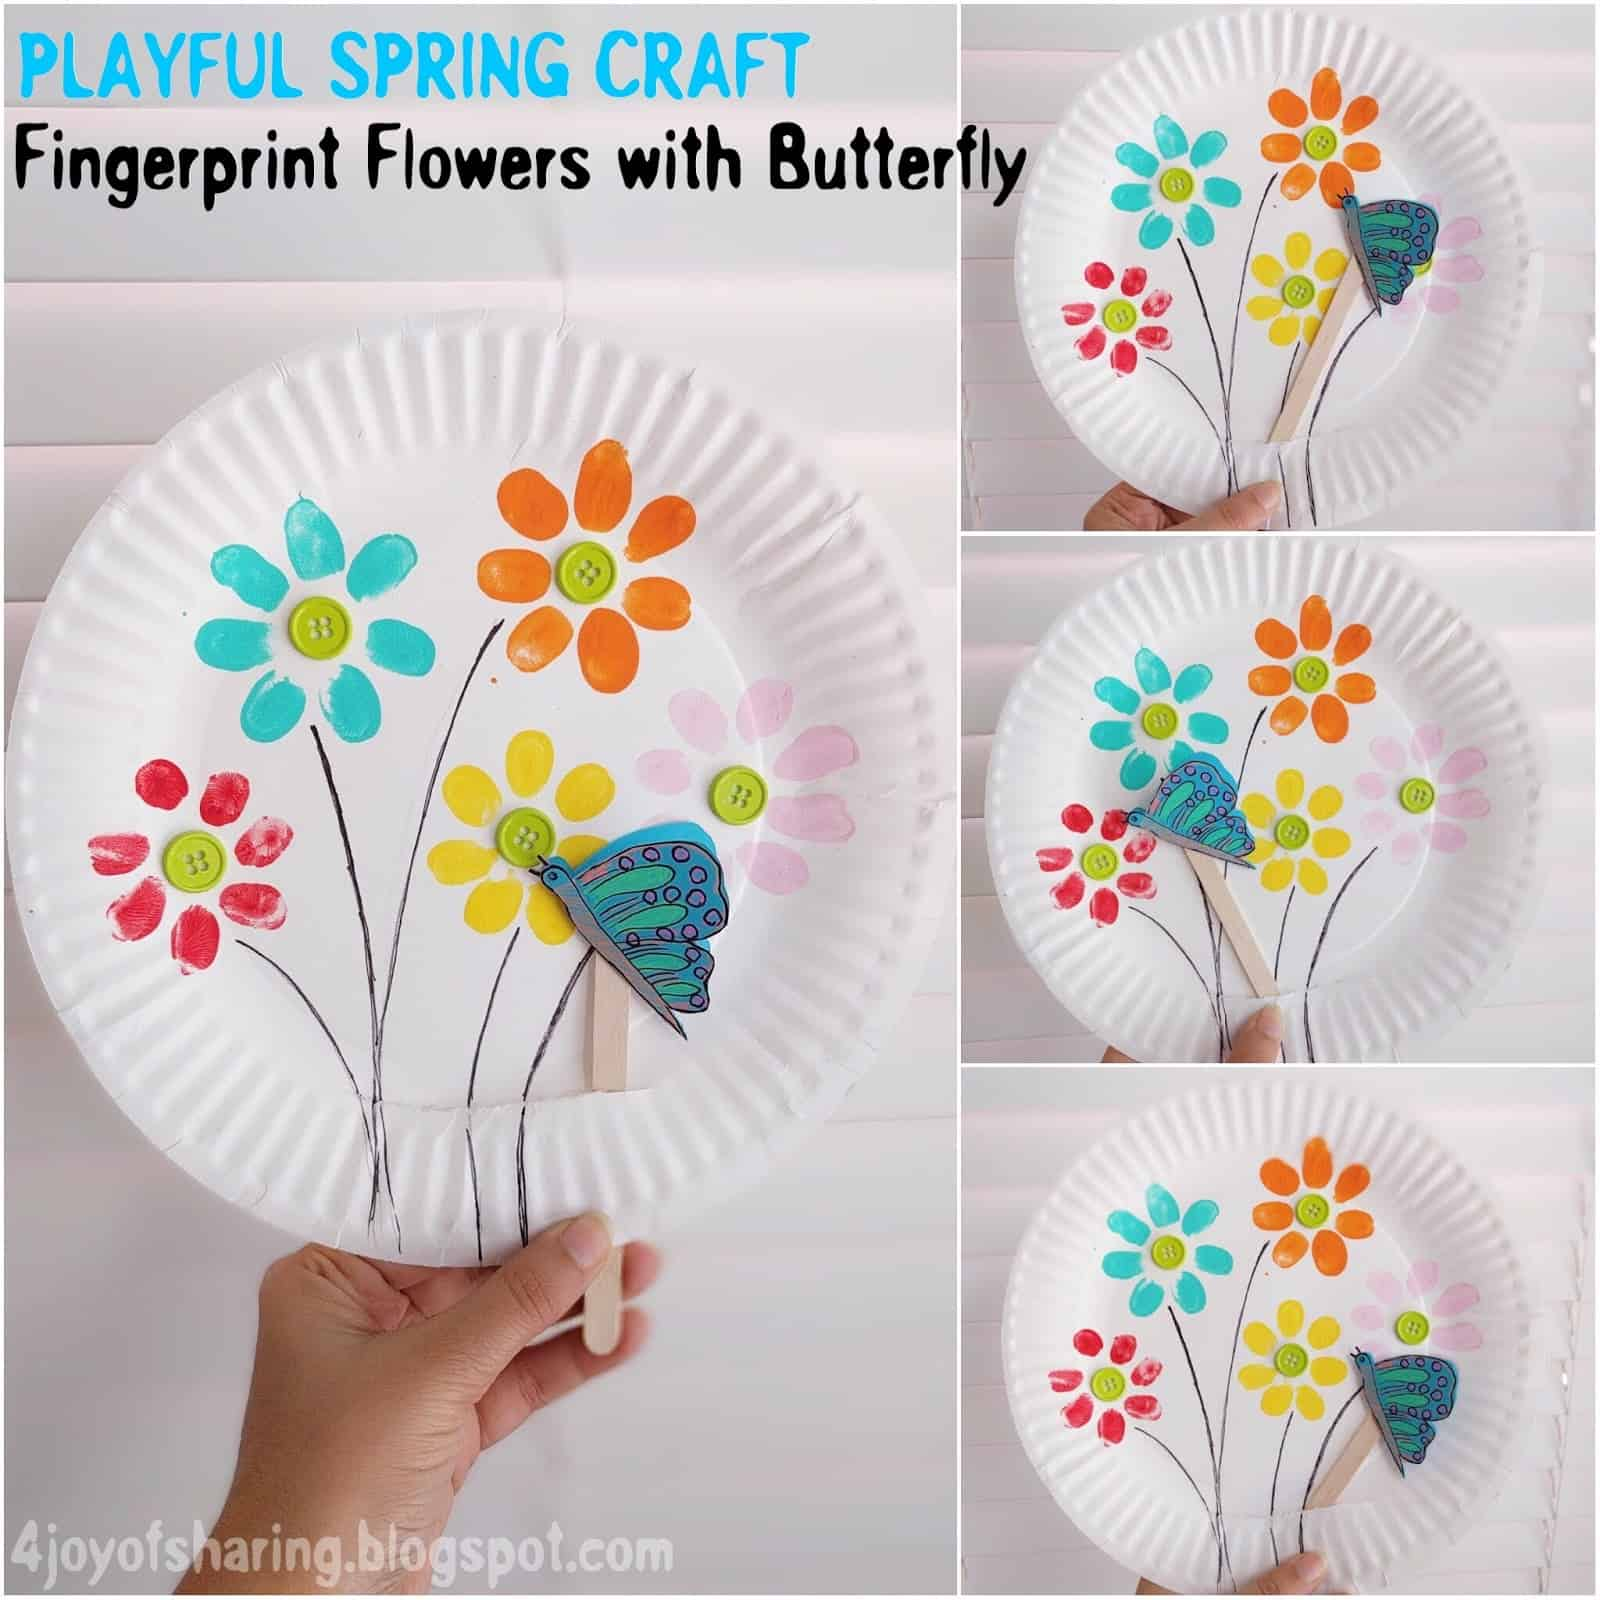 Finger print flowers with a moving butterfly